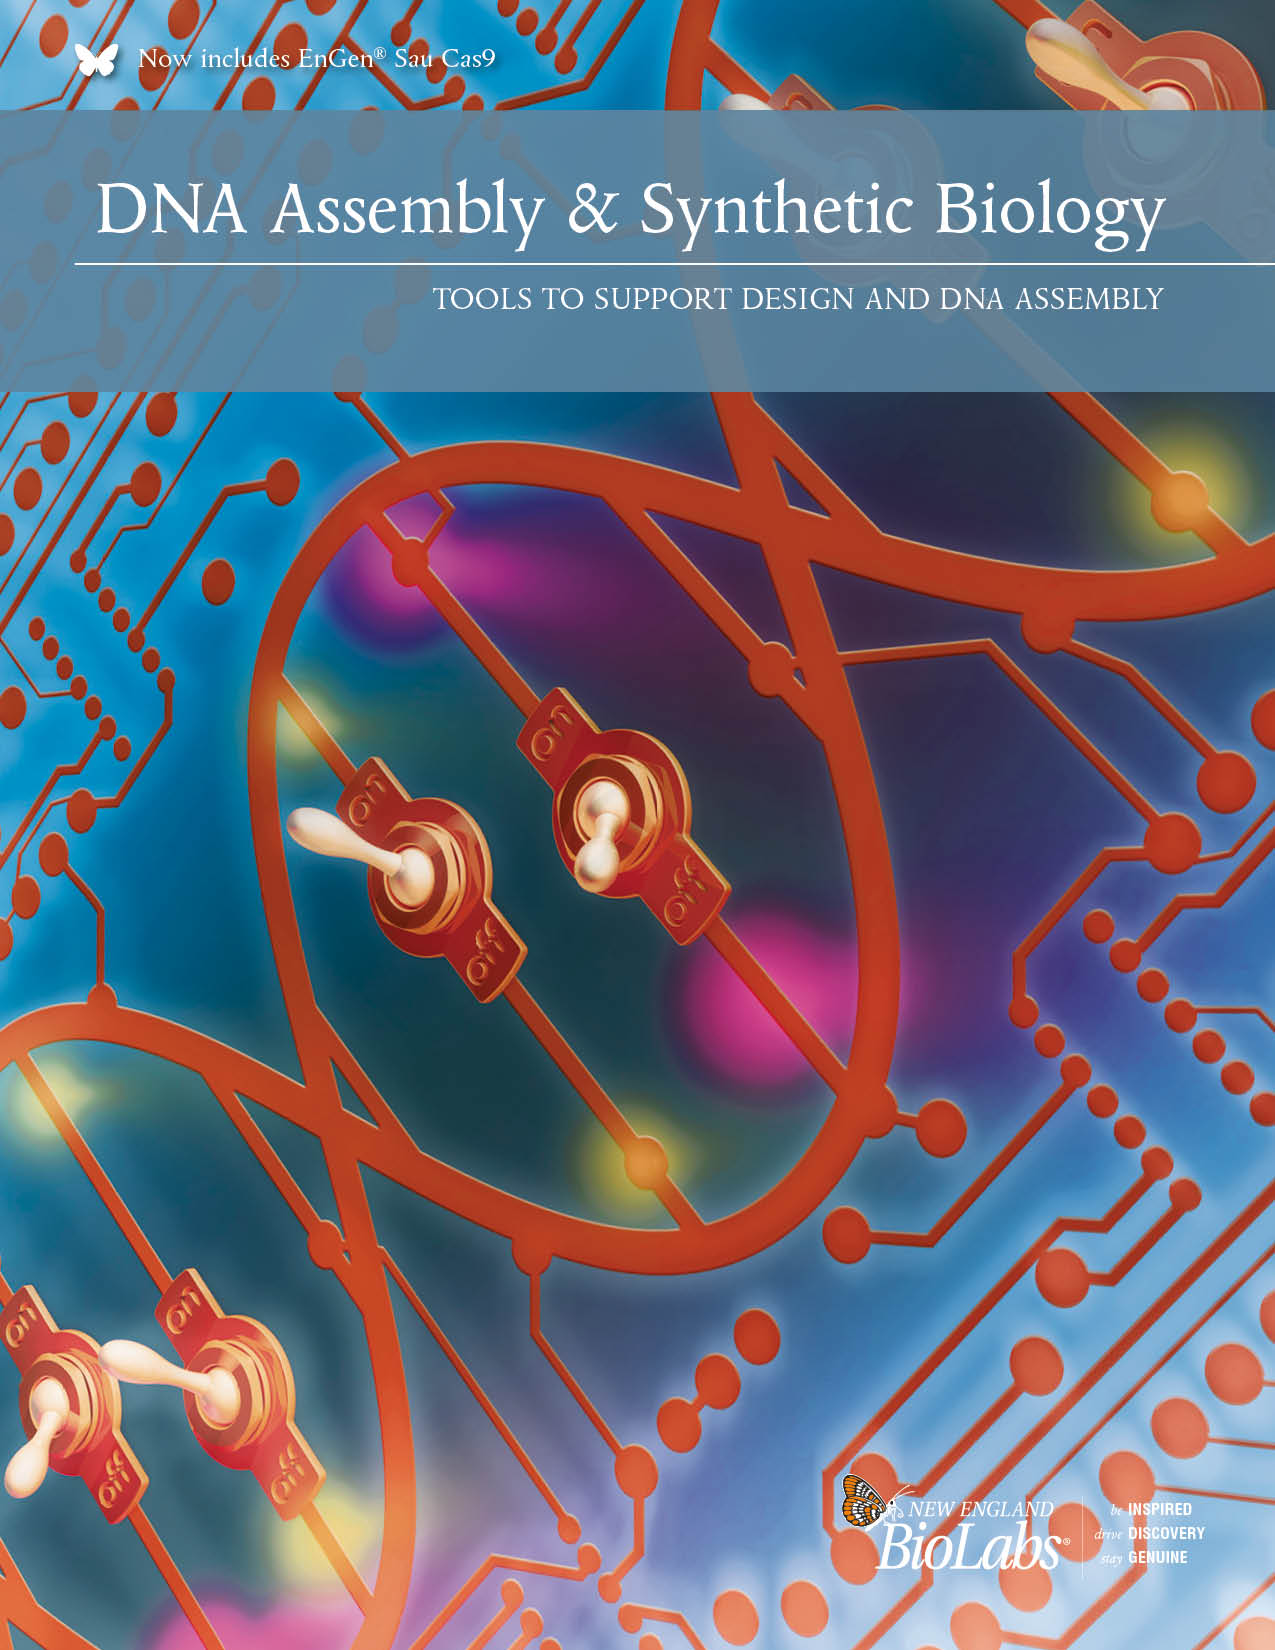 DNA Assembly and Synthetic Biology Brochure